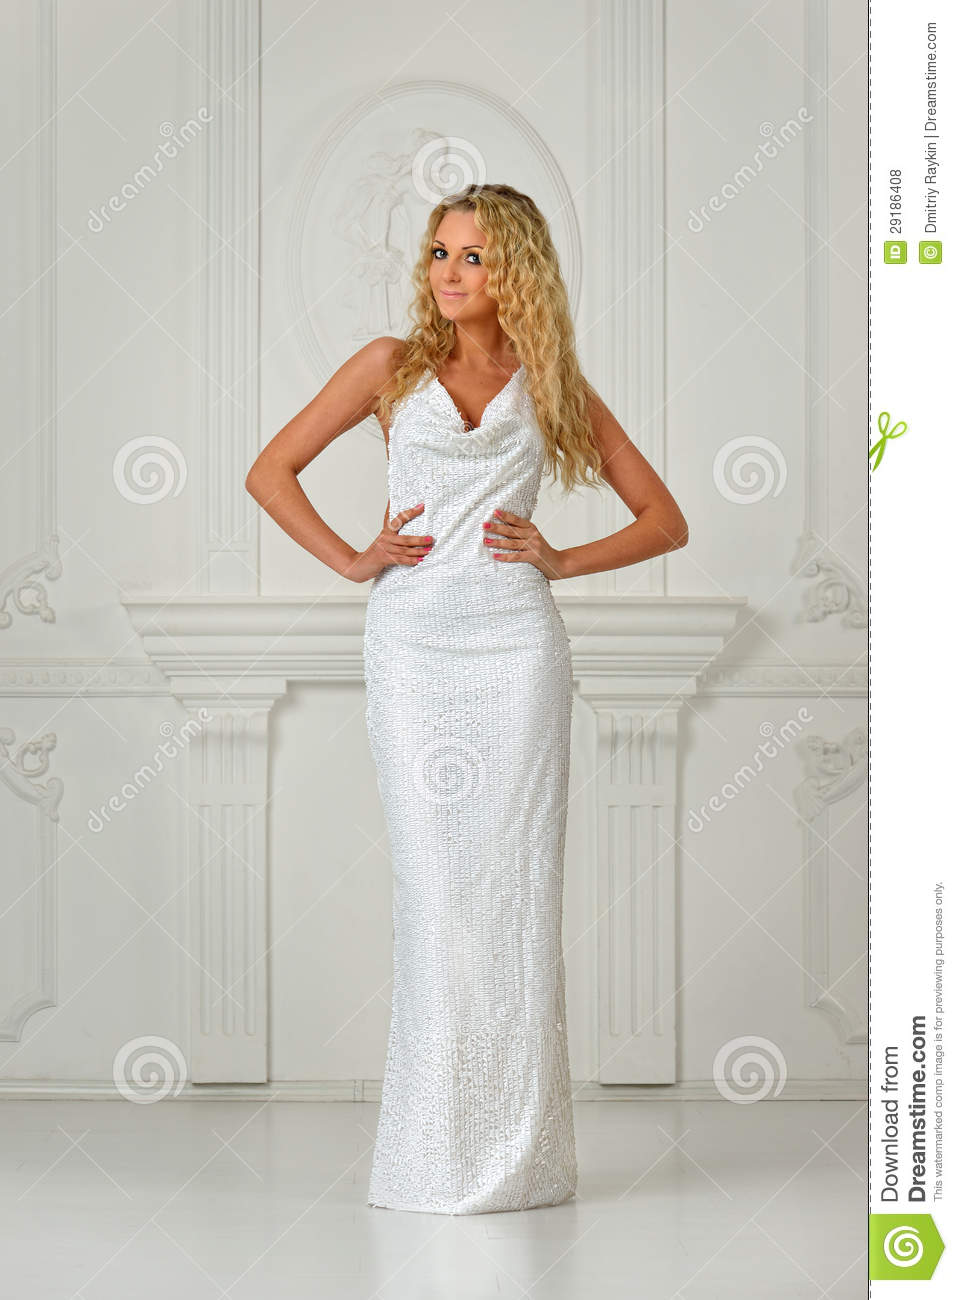 beautiful blonde woman in white long dress stock photo image 29186408. Black Bedroom Furniture Sets. Home Design Ideas